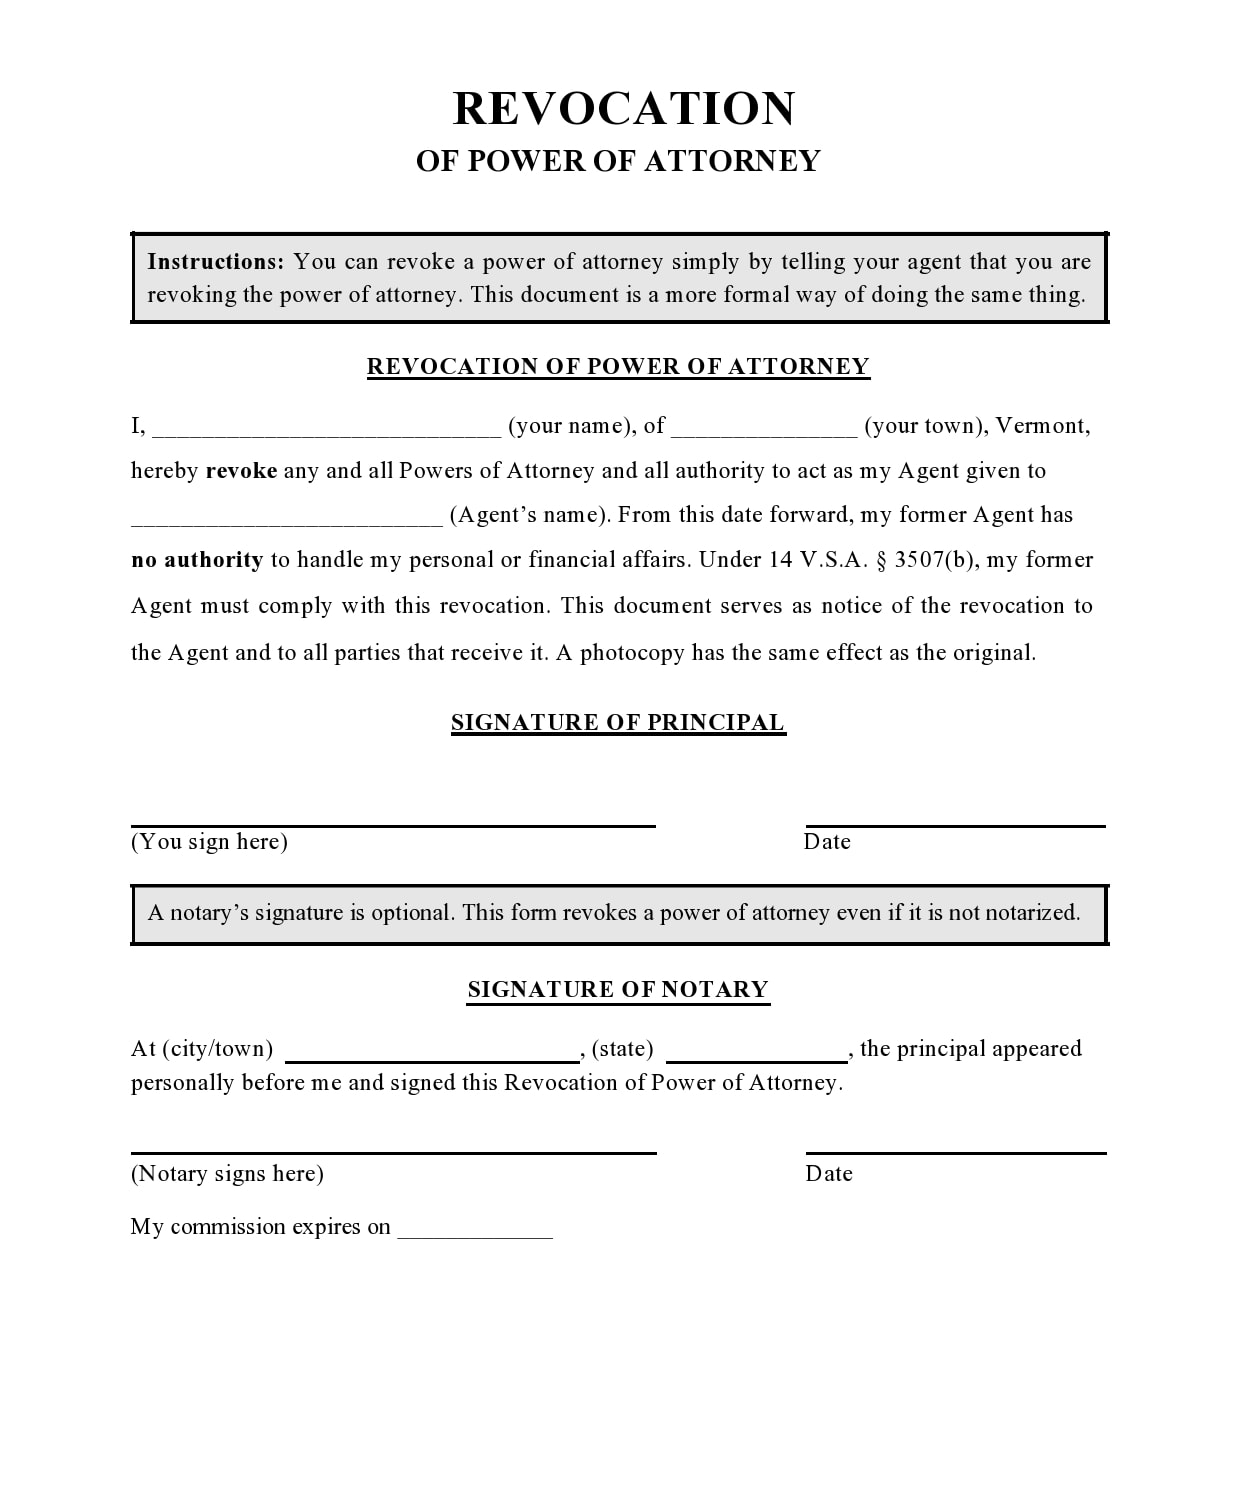 power of attorney revocation form 03